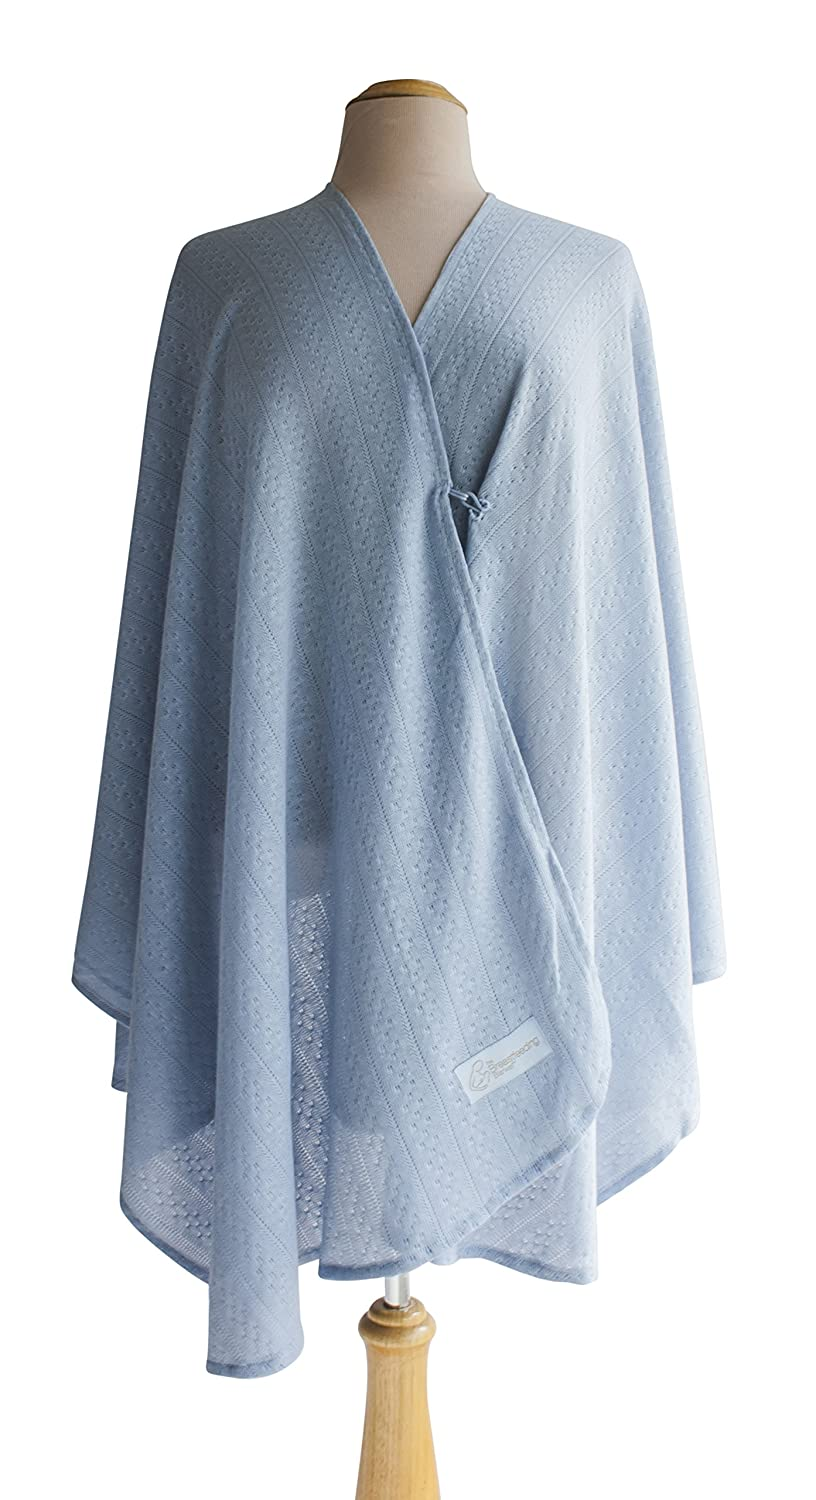 全国宅配無料 Primo Bebitza Textured Knit Knit Nursing Textured Cover, Blue B00L1MZ2GI by Primo B00L1MZ2GI, イタミシ:99348661 --- a0267596.xsph.ru